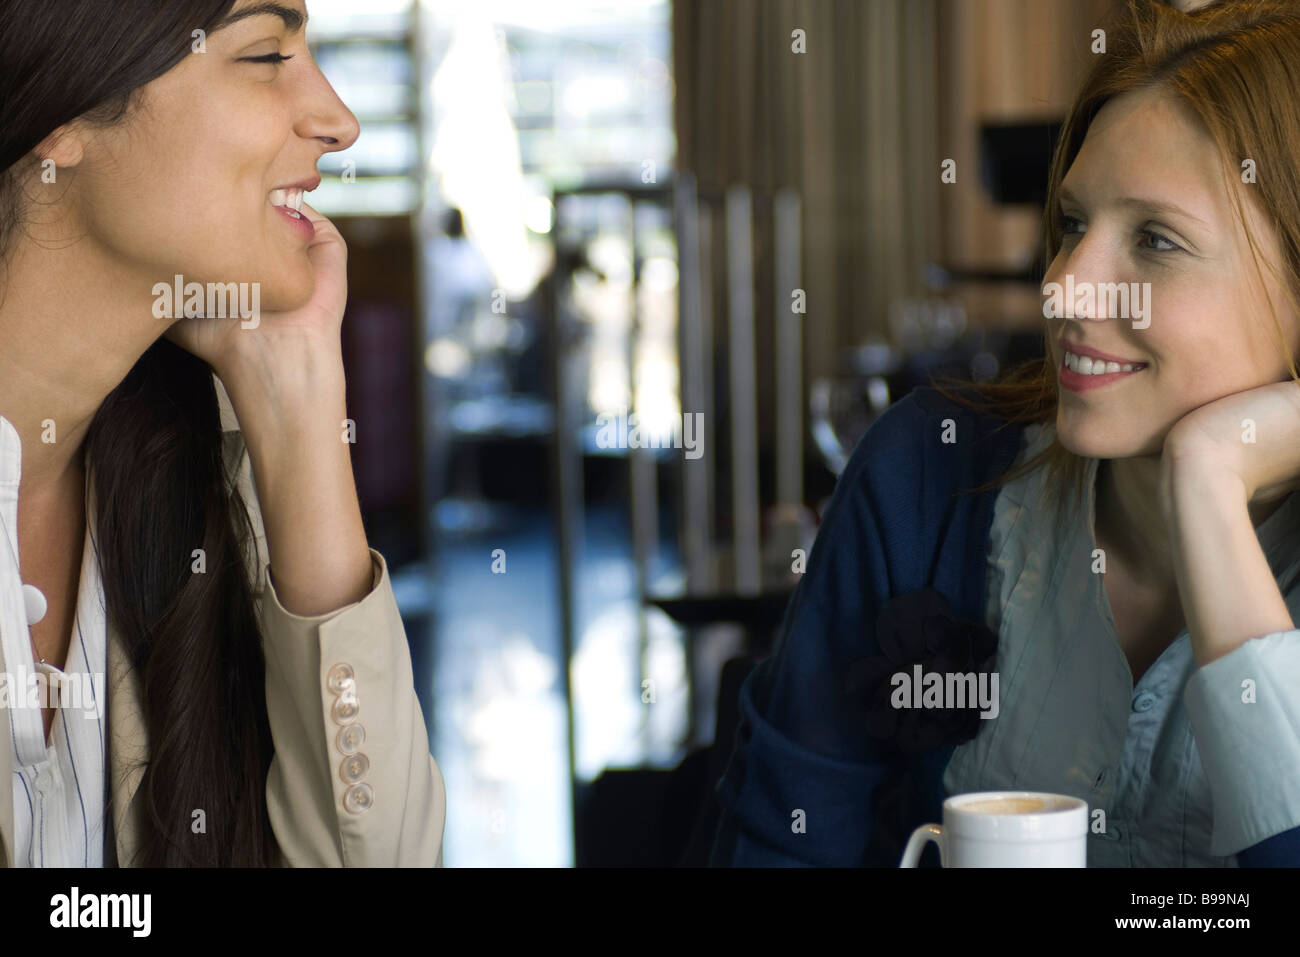 Two female friends having coffee and chatting in cafe - Stock Image